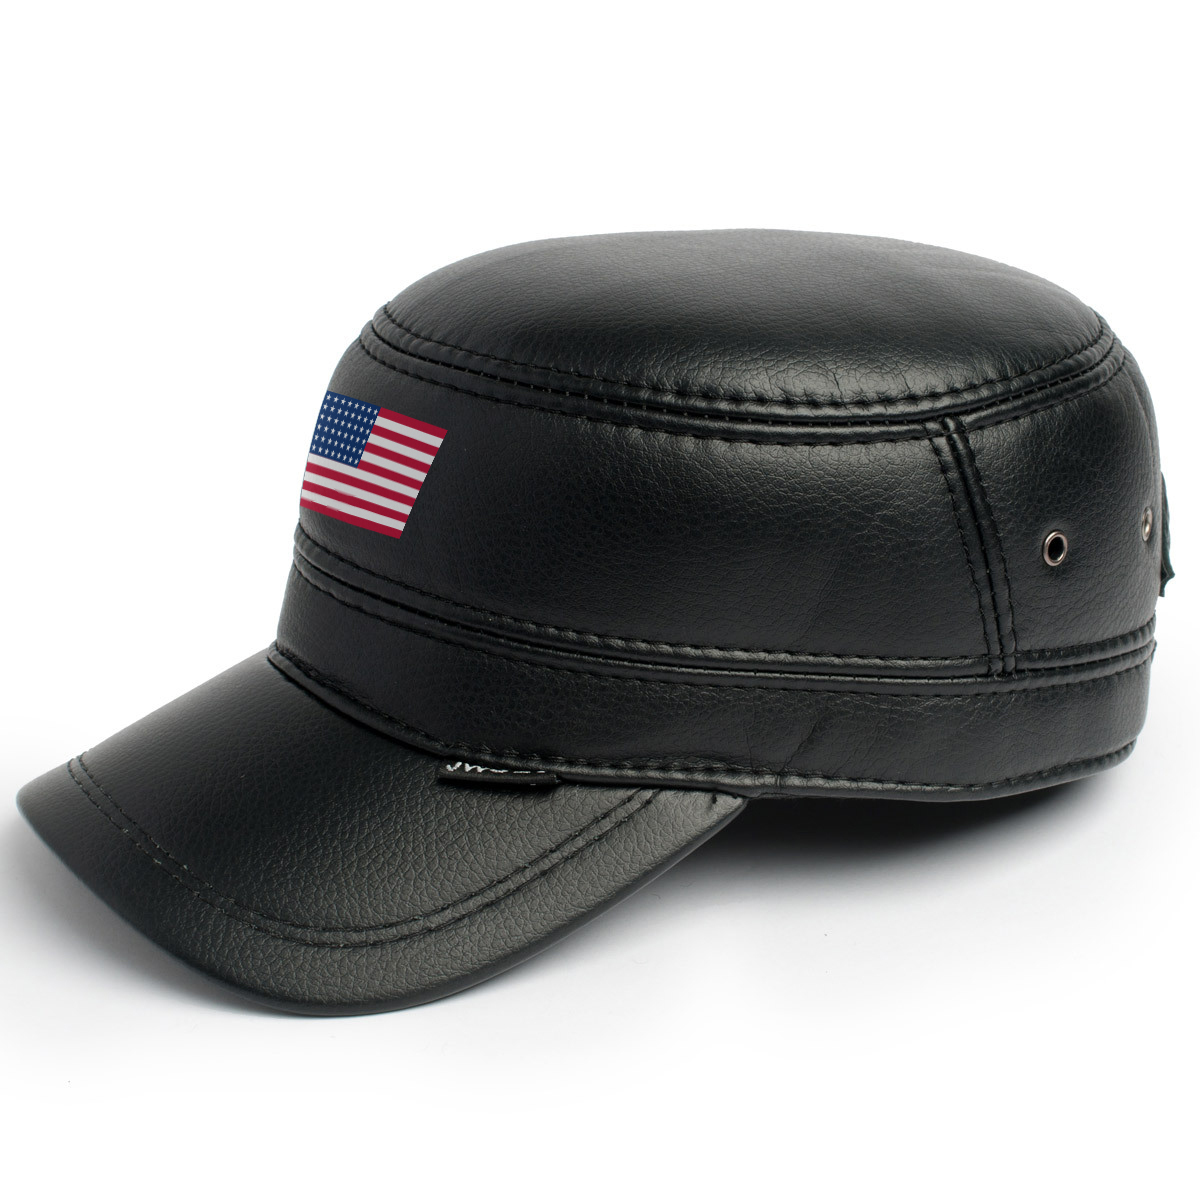 Primary image for Leather Skin Handmade Genuine Black Leather Snapback Cap with American USA Flag